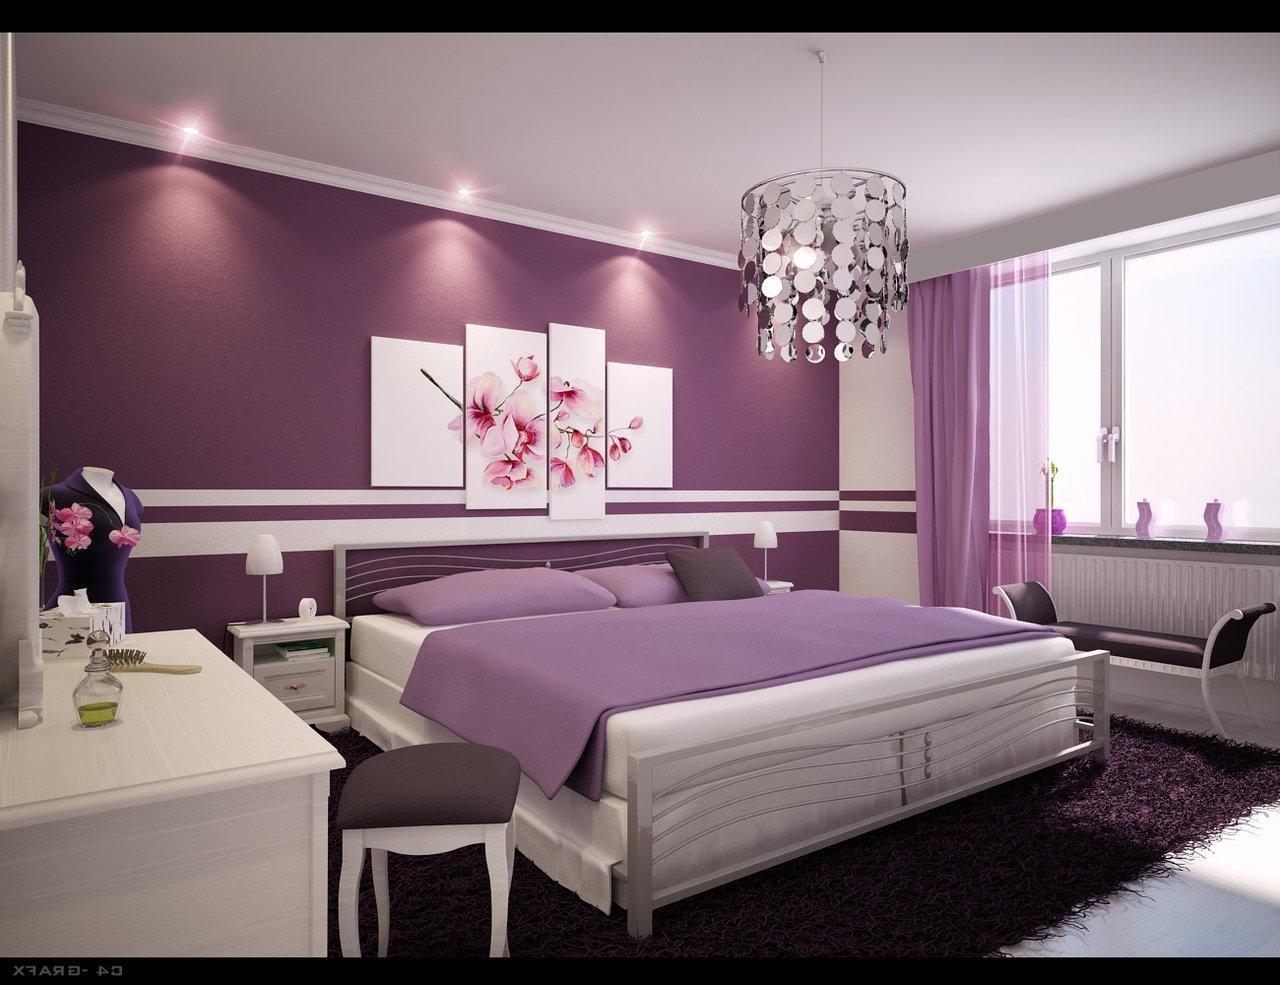 10 Stunning Ideas For Decorating A Bedroom ultramodern bedroom decorating ideas decobizz 2020